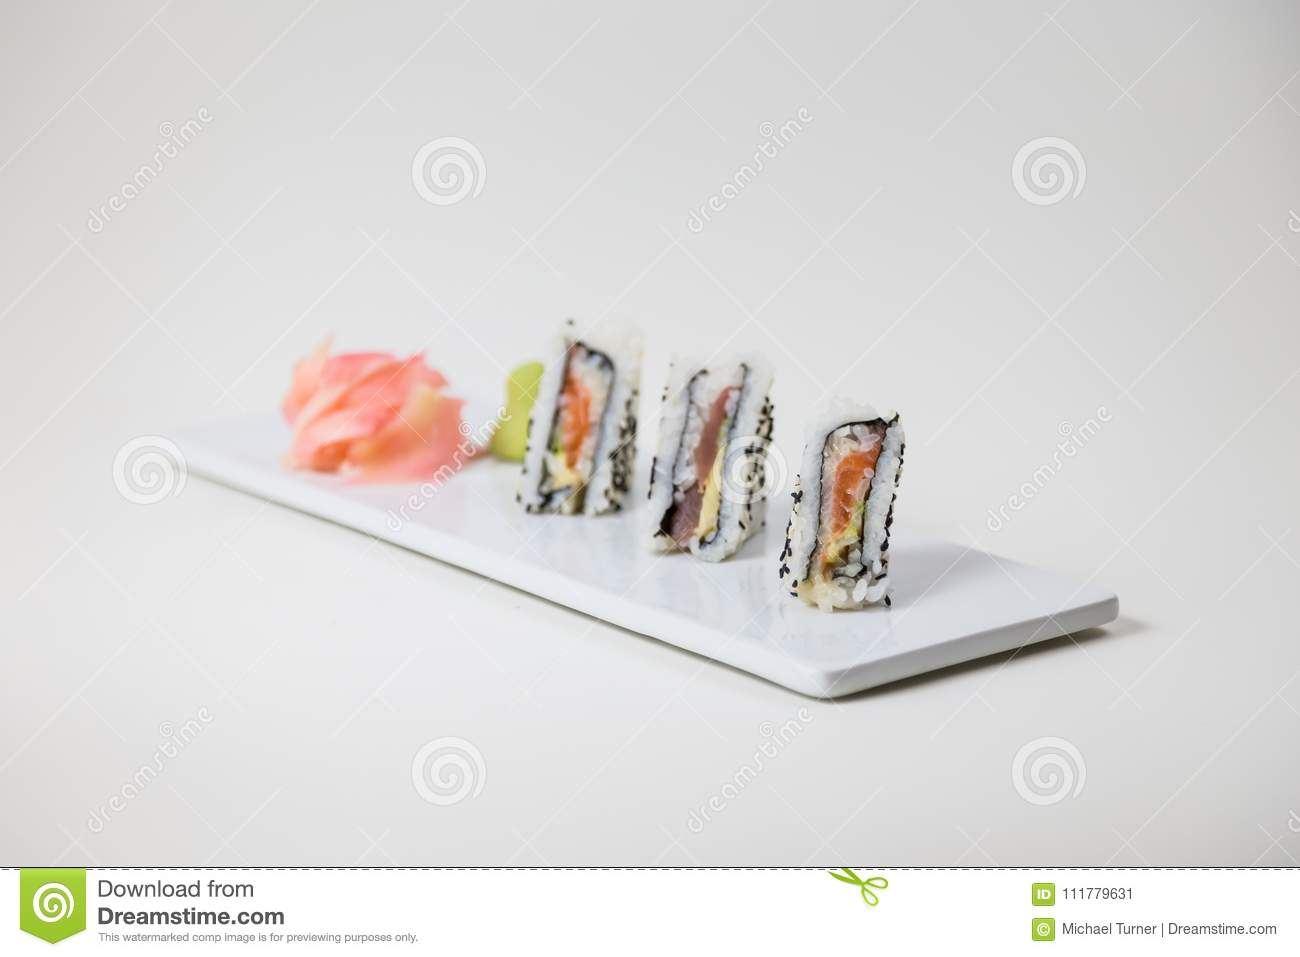 Sushi on a white plate on a white background and pickled ginger